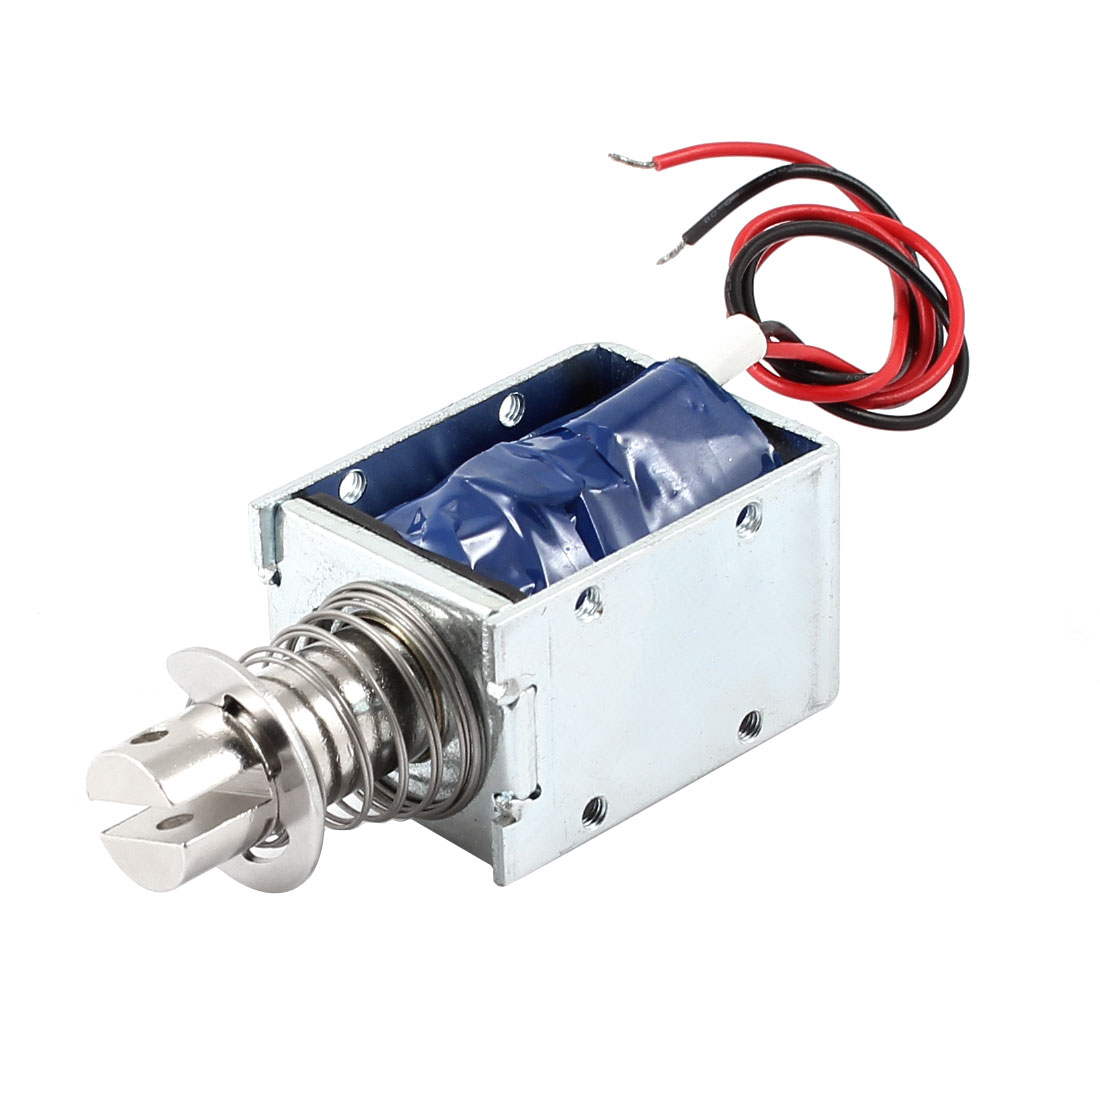 DC 48V 92.16W 7mm 500g Pull Type Open Frame Linear Motion Solenoid Electromagnet Actuator